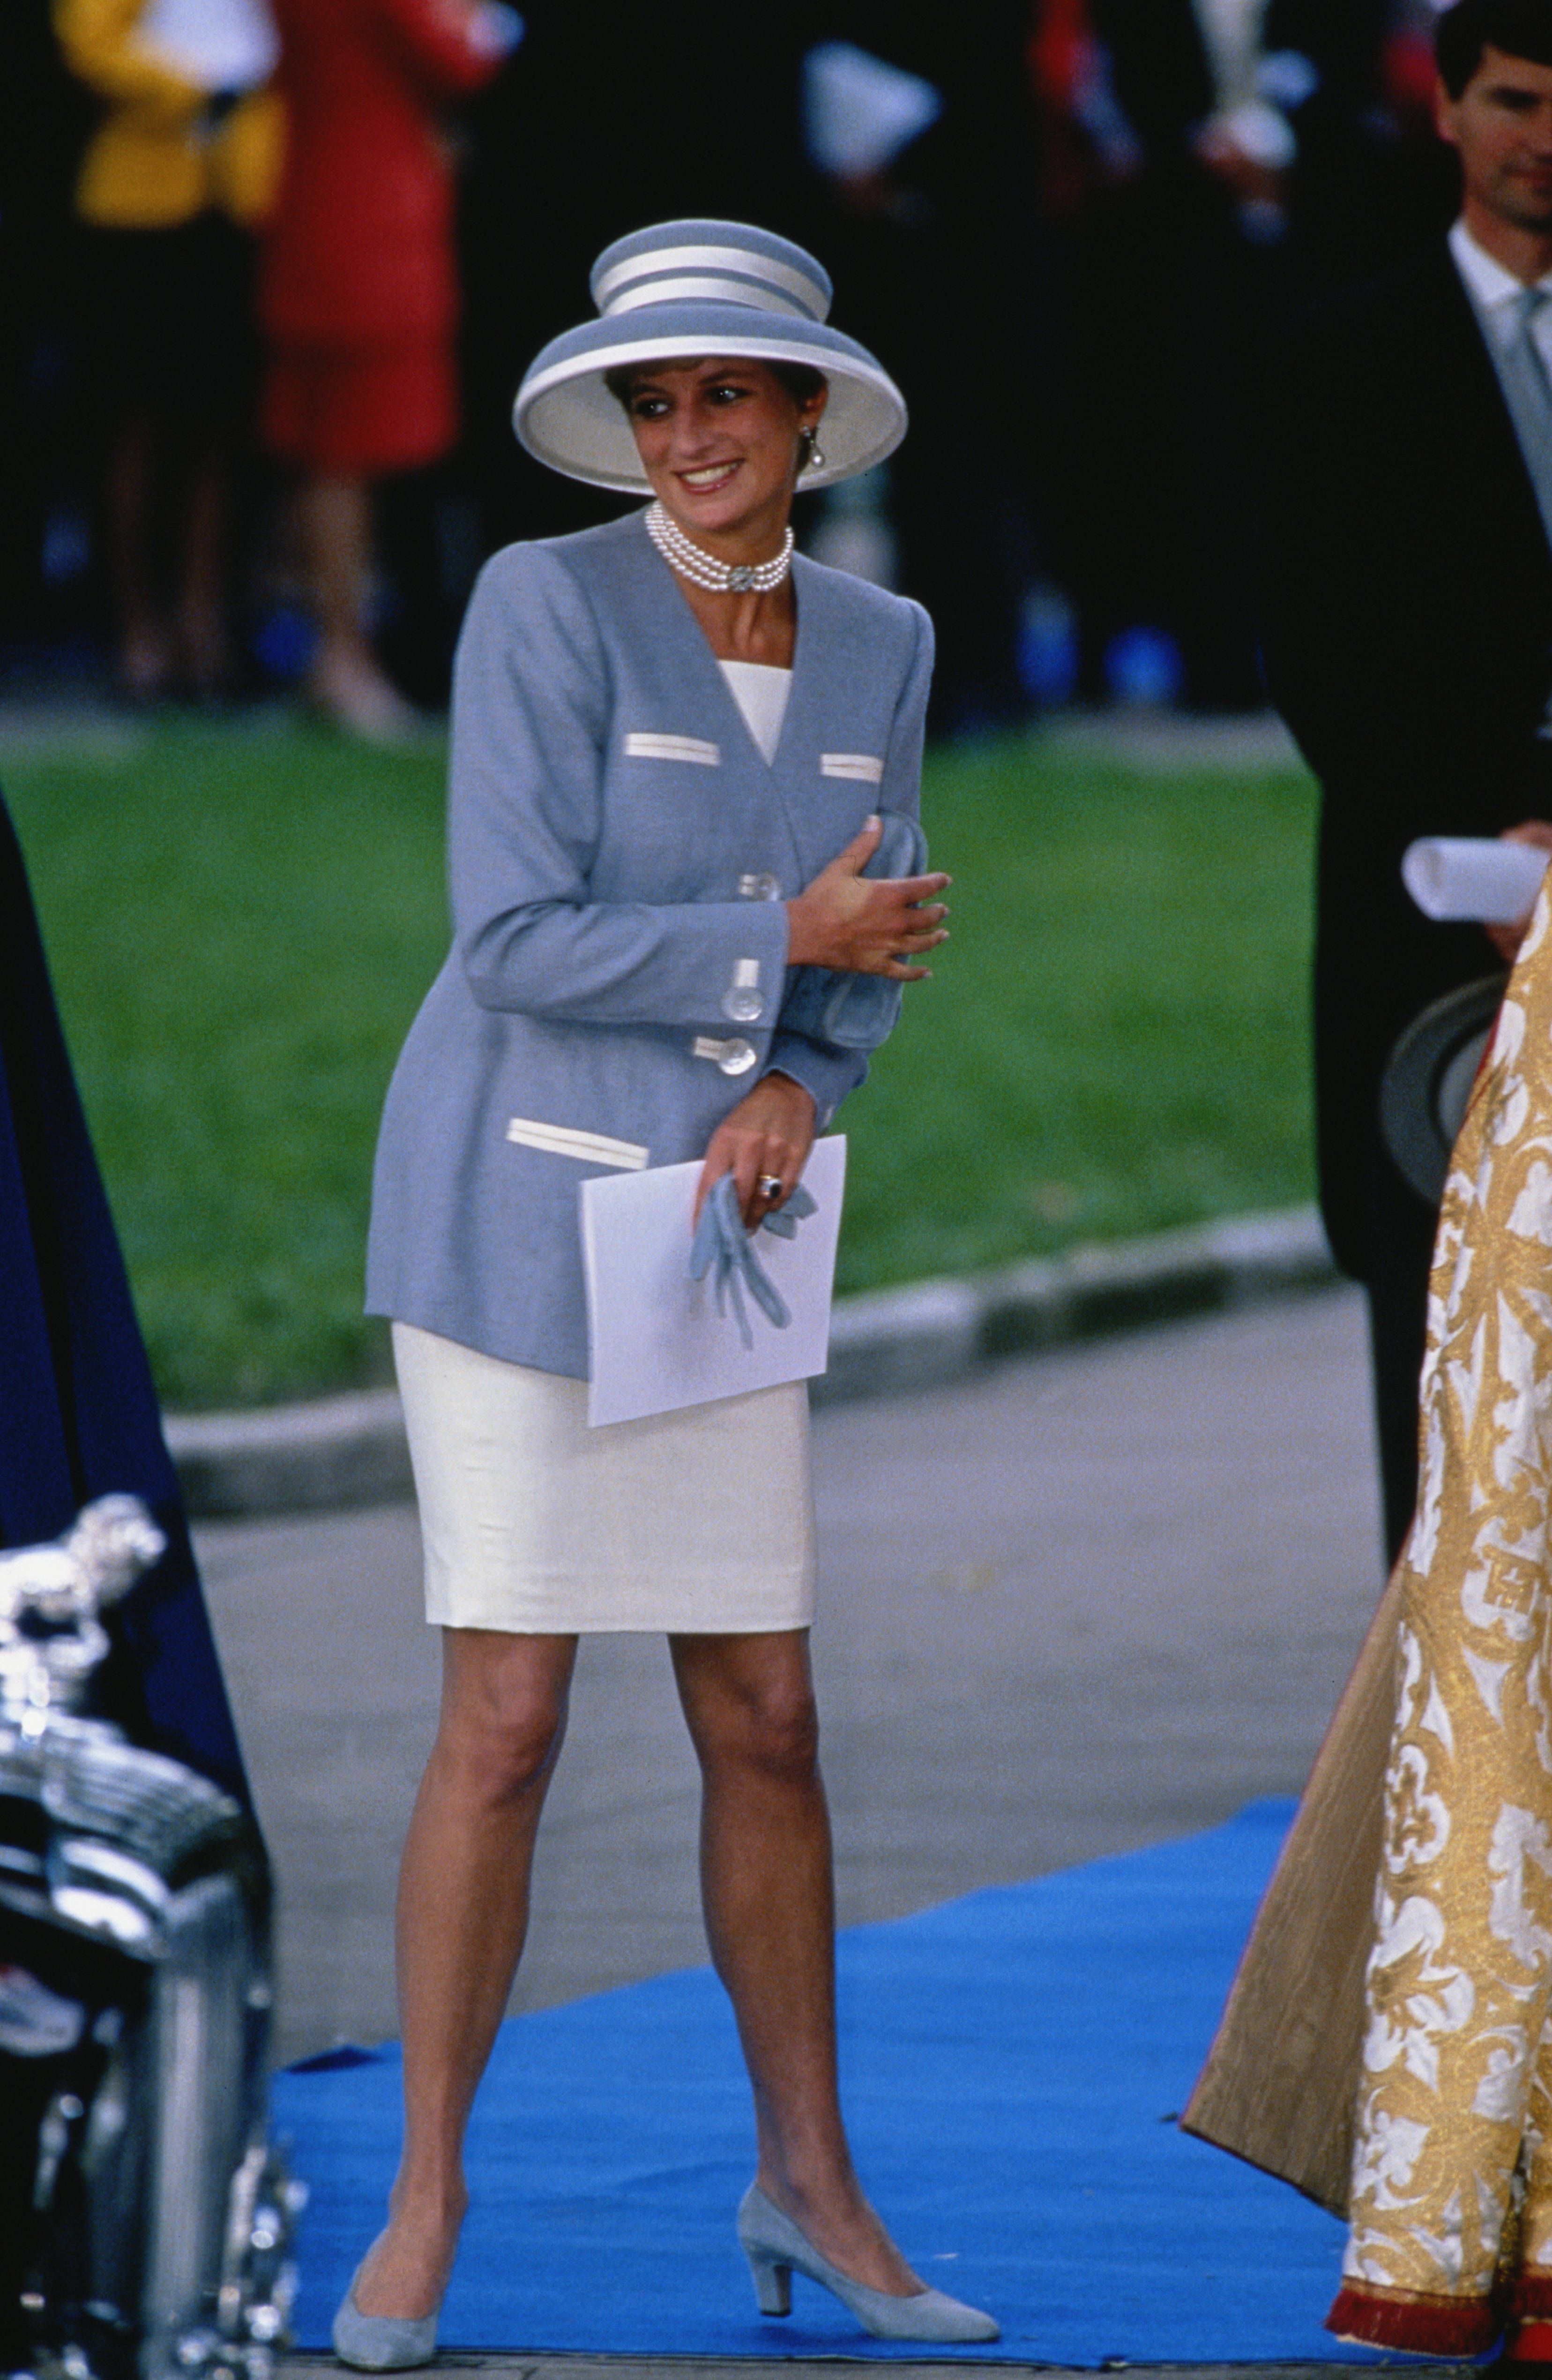 Diana in 1994. Great outfit. She really had style.